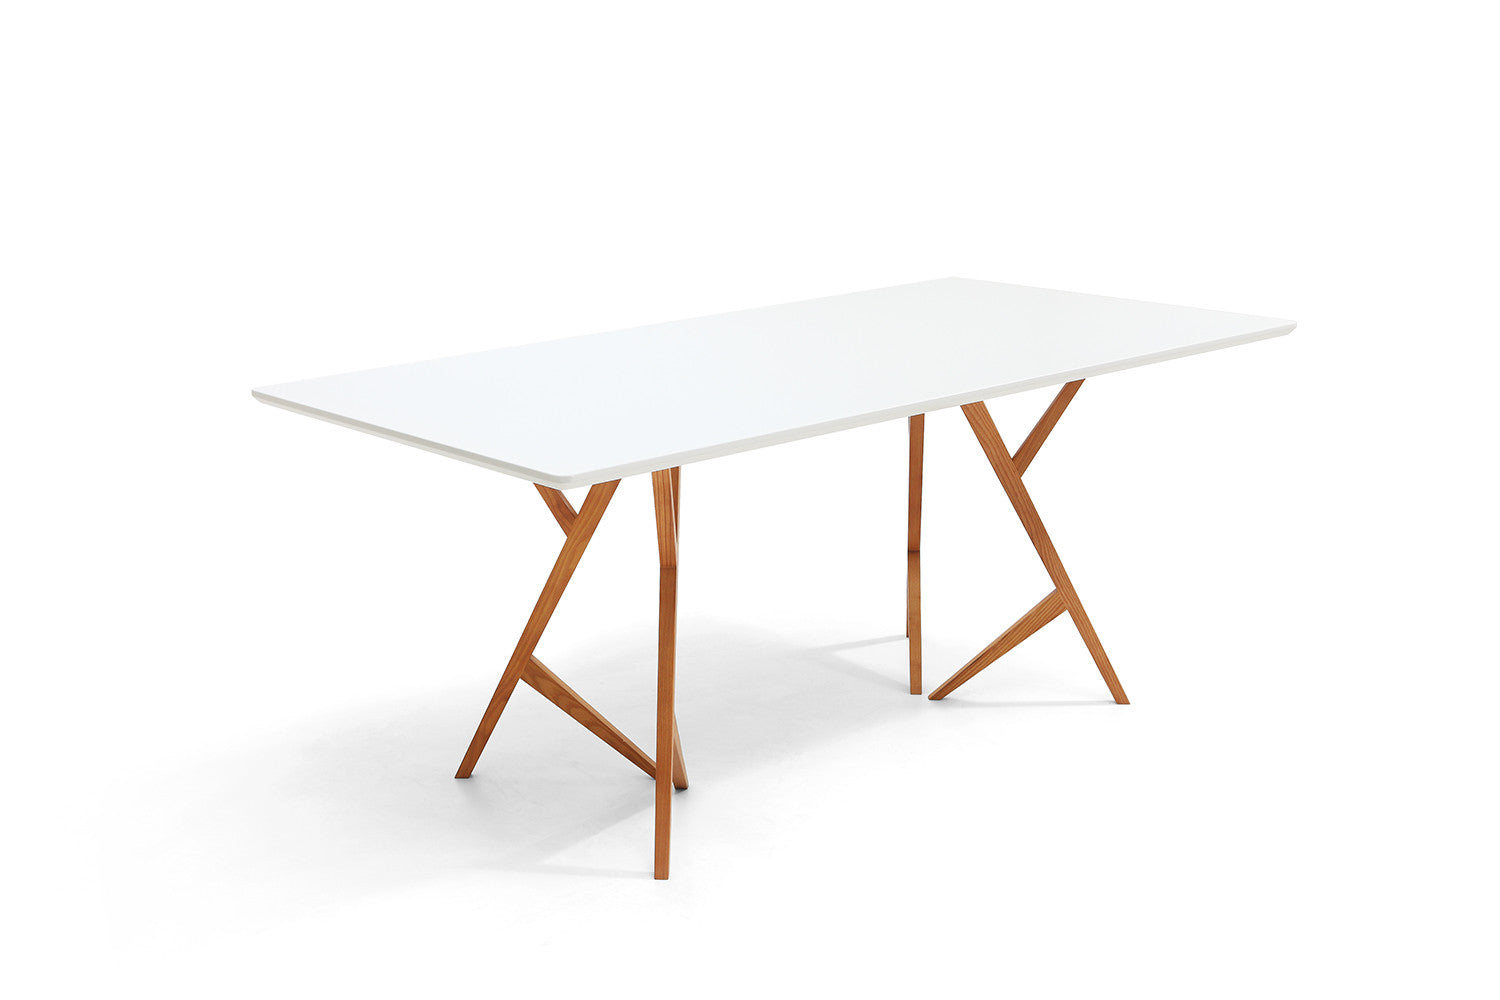 Table de salle manger design scandinave vispa dewarens for Table salle a manger bois blanc